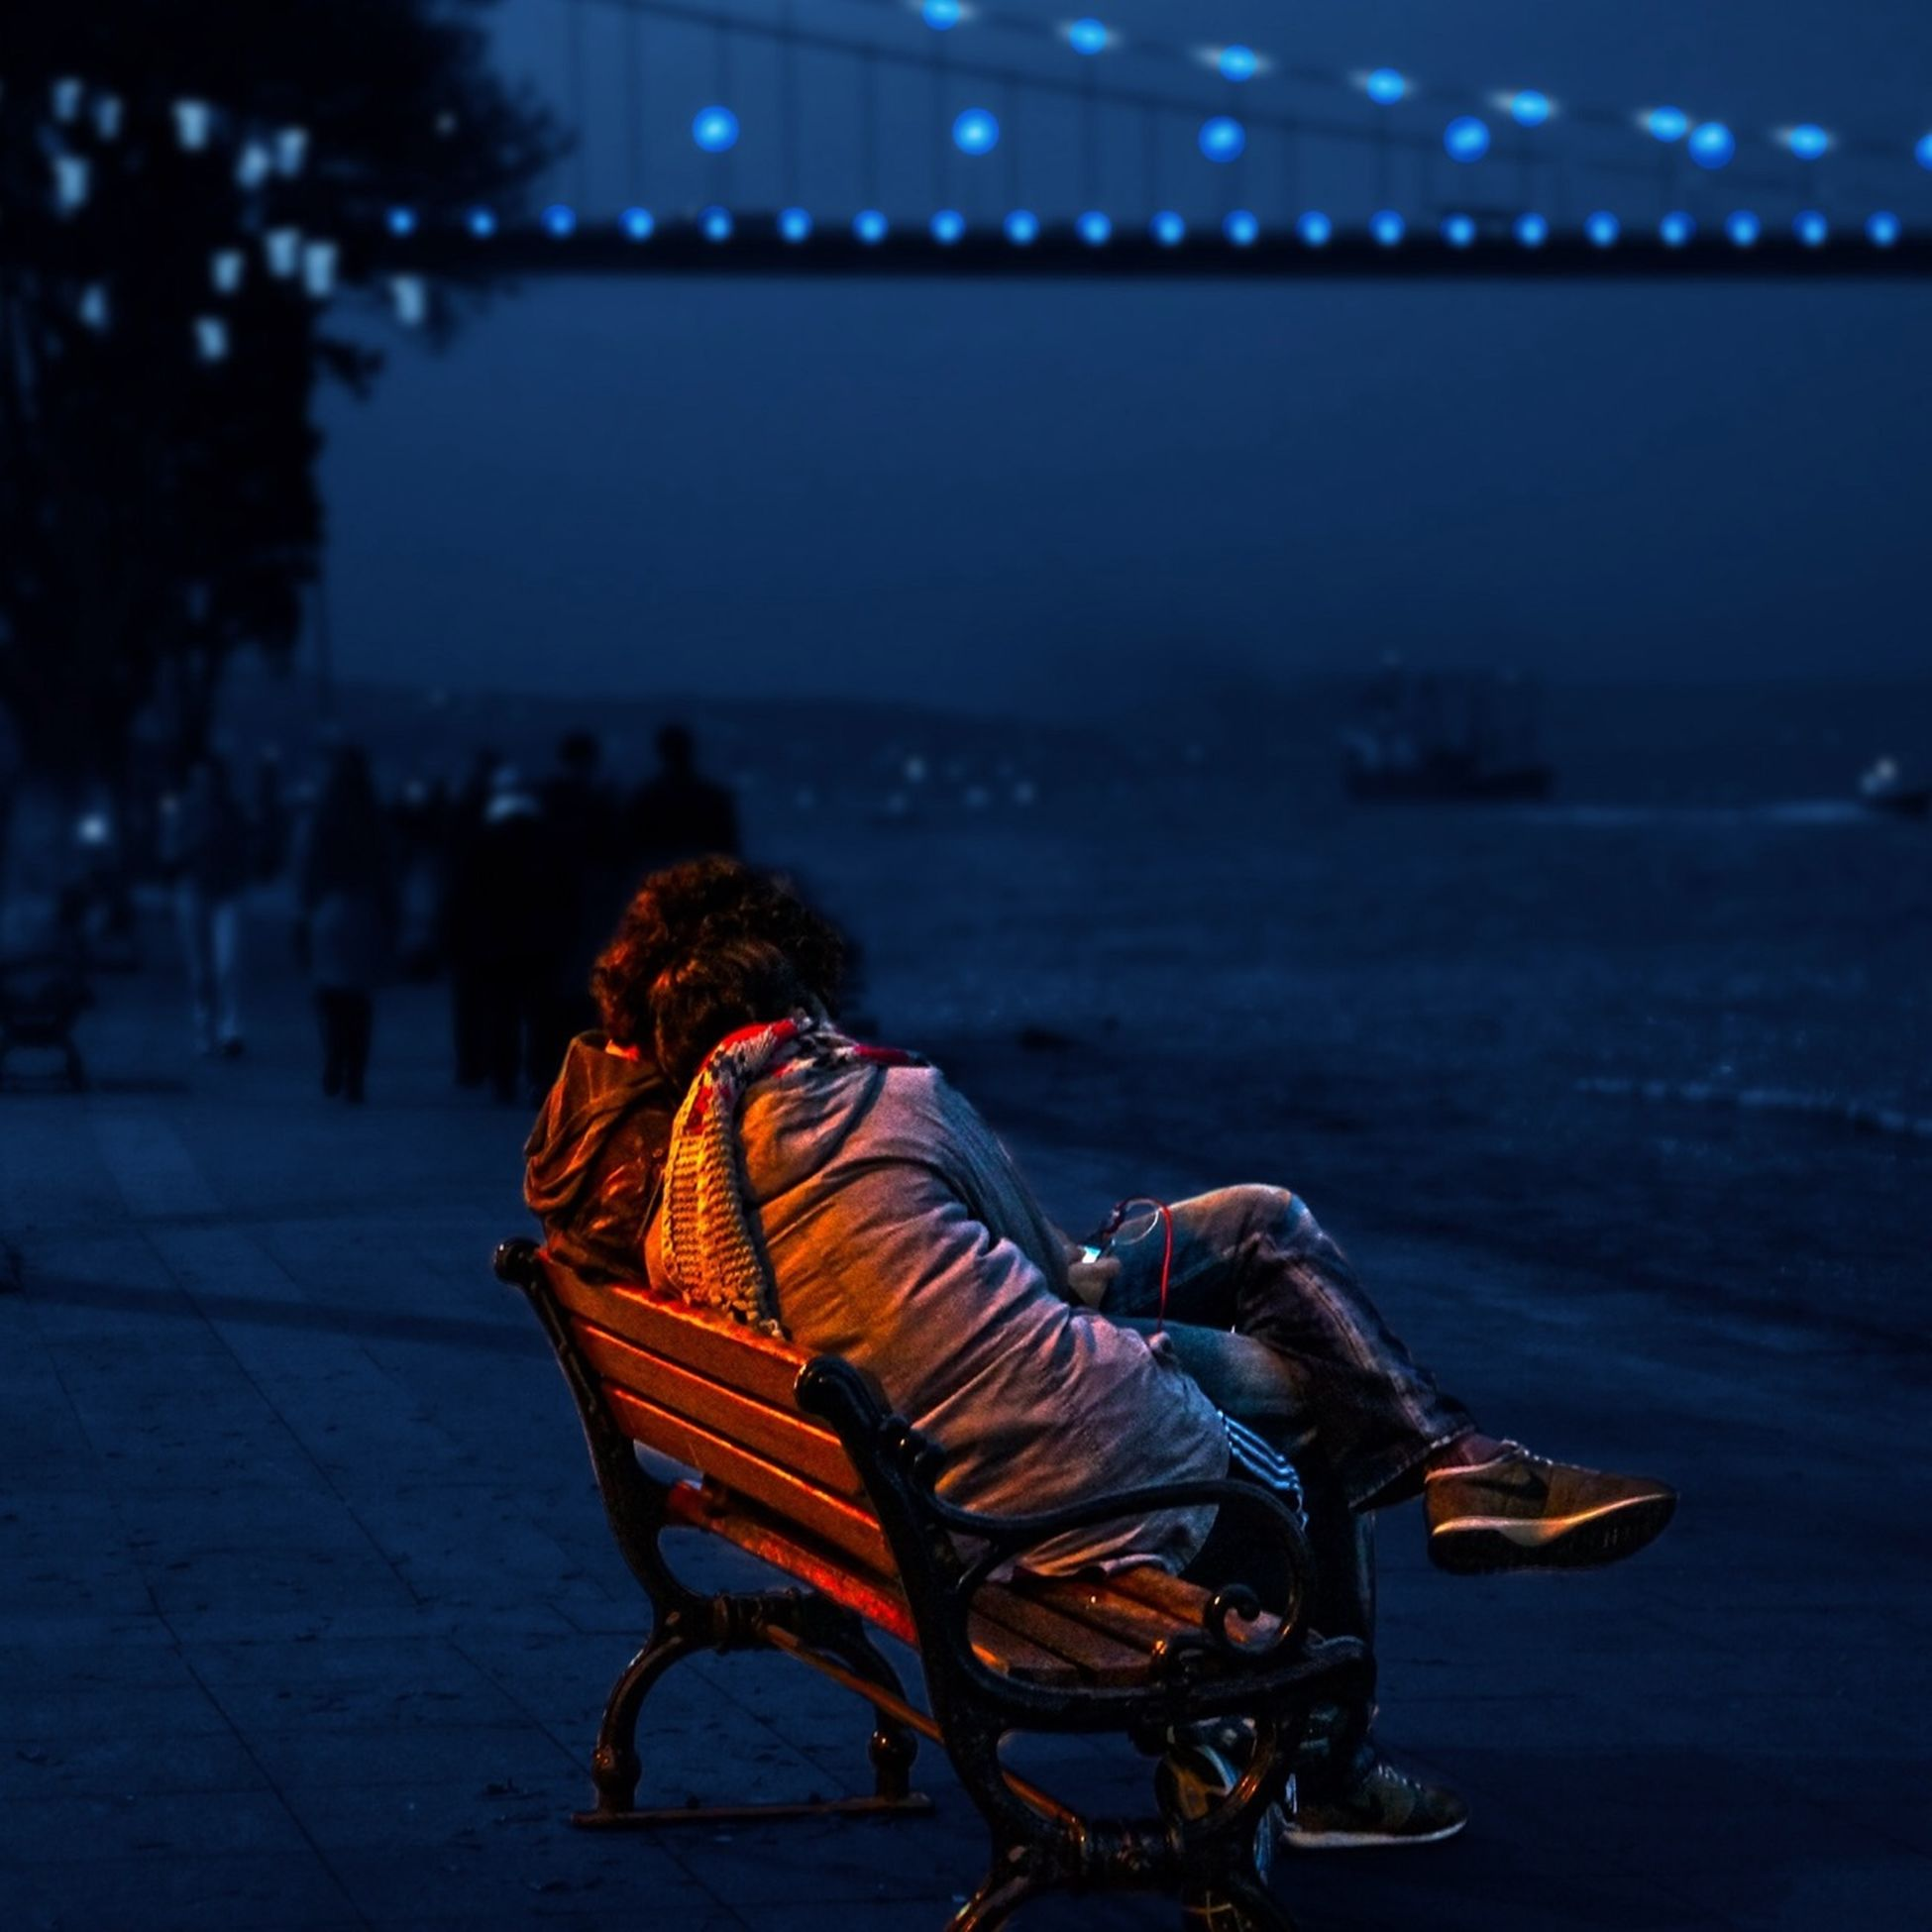 lifestyles, leisure activity, men, sitting, person, night, rear view, illuminated, relaxation, focus on foreground, casual clothing, water, outdoors, full length, sea, togetherness, arts culture and entertainment